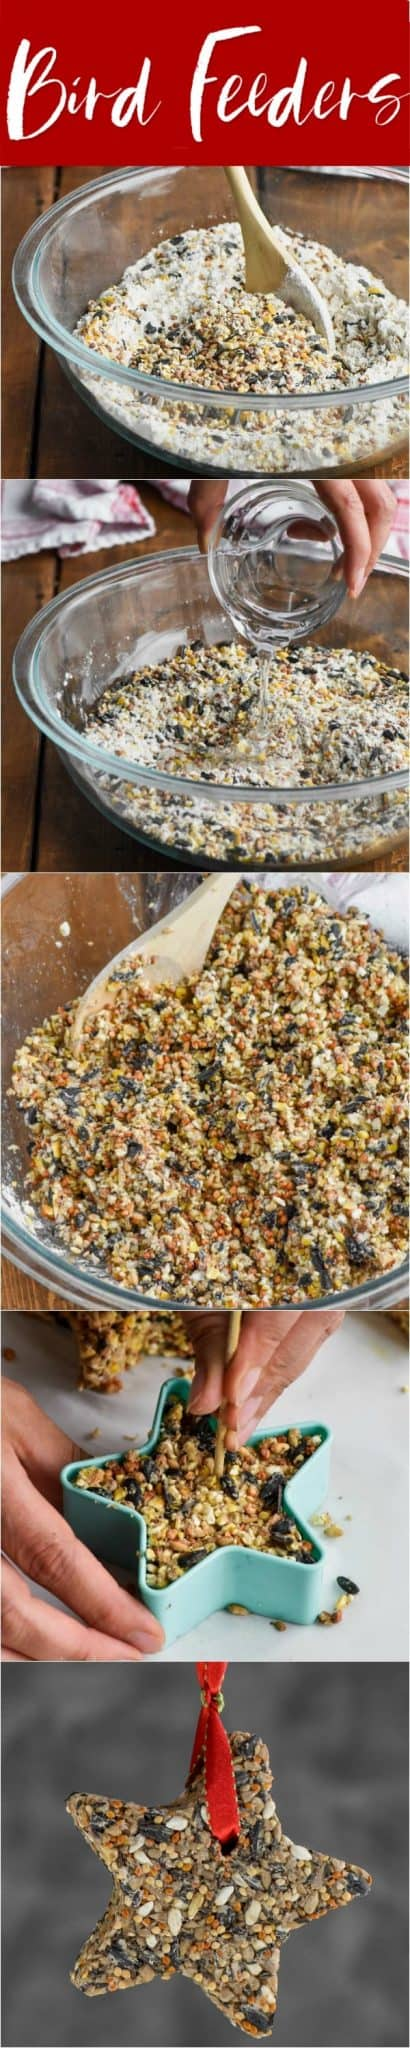 step by step tutorial photo collage for how to make homemade bird feeders